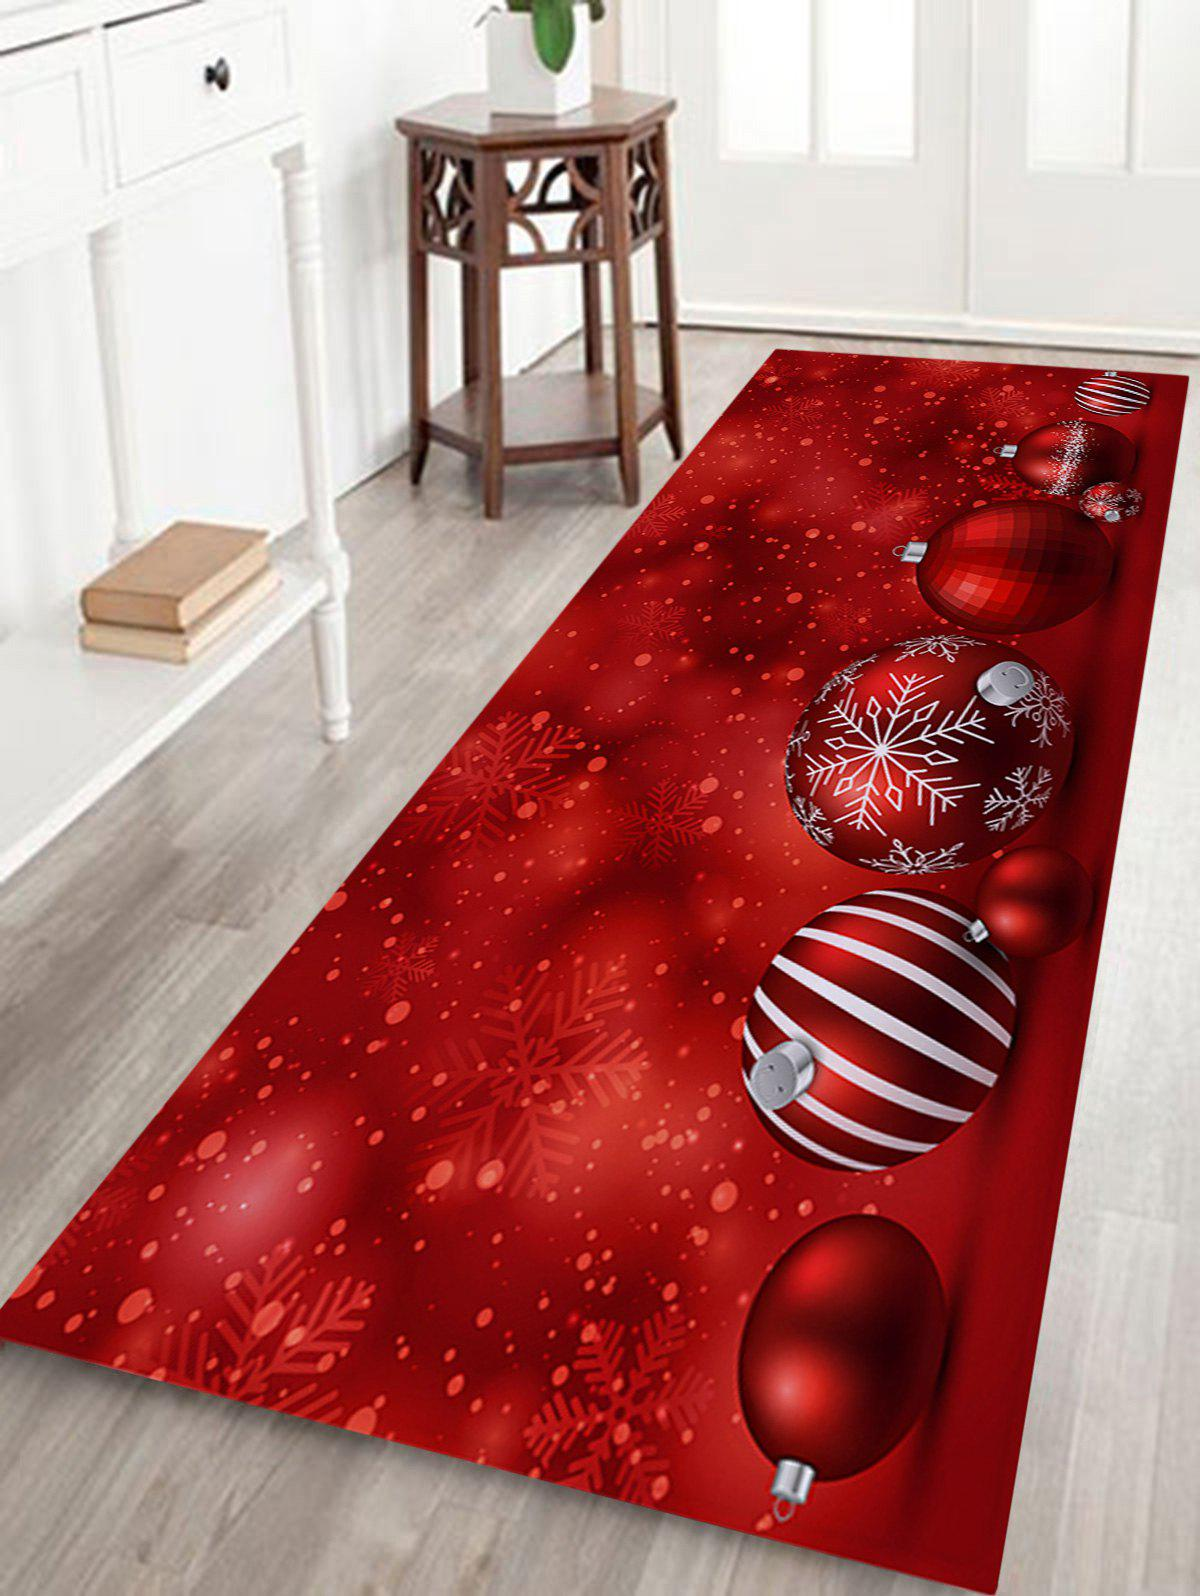 Christmas Balls Pattern Skidproof Coral Fleece Bath RugHOME<br><br>Size: W24 INCH * L71 INCH; Color: RED; Products Type: Bath rugs; Materials: Coral FLeece; Pattern: Ball; Style: Festival; Shape: Rectangular; Package Contents: 1 x Rug;